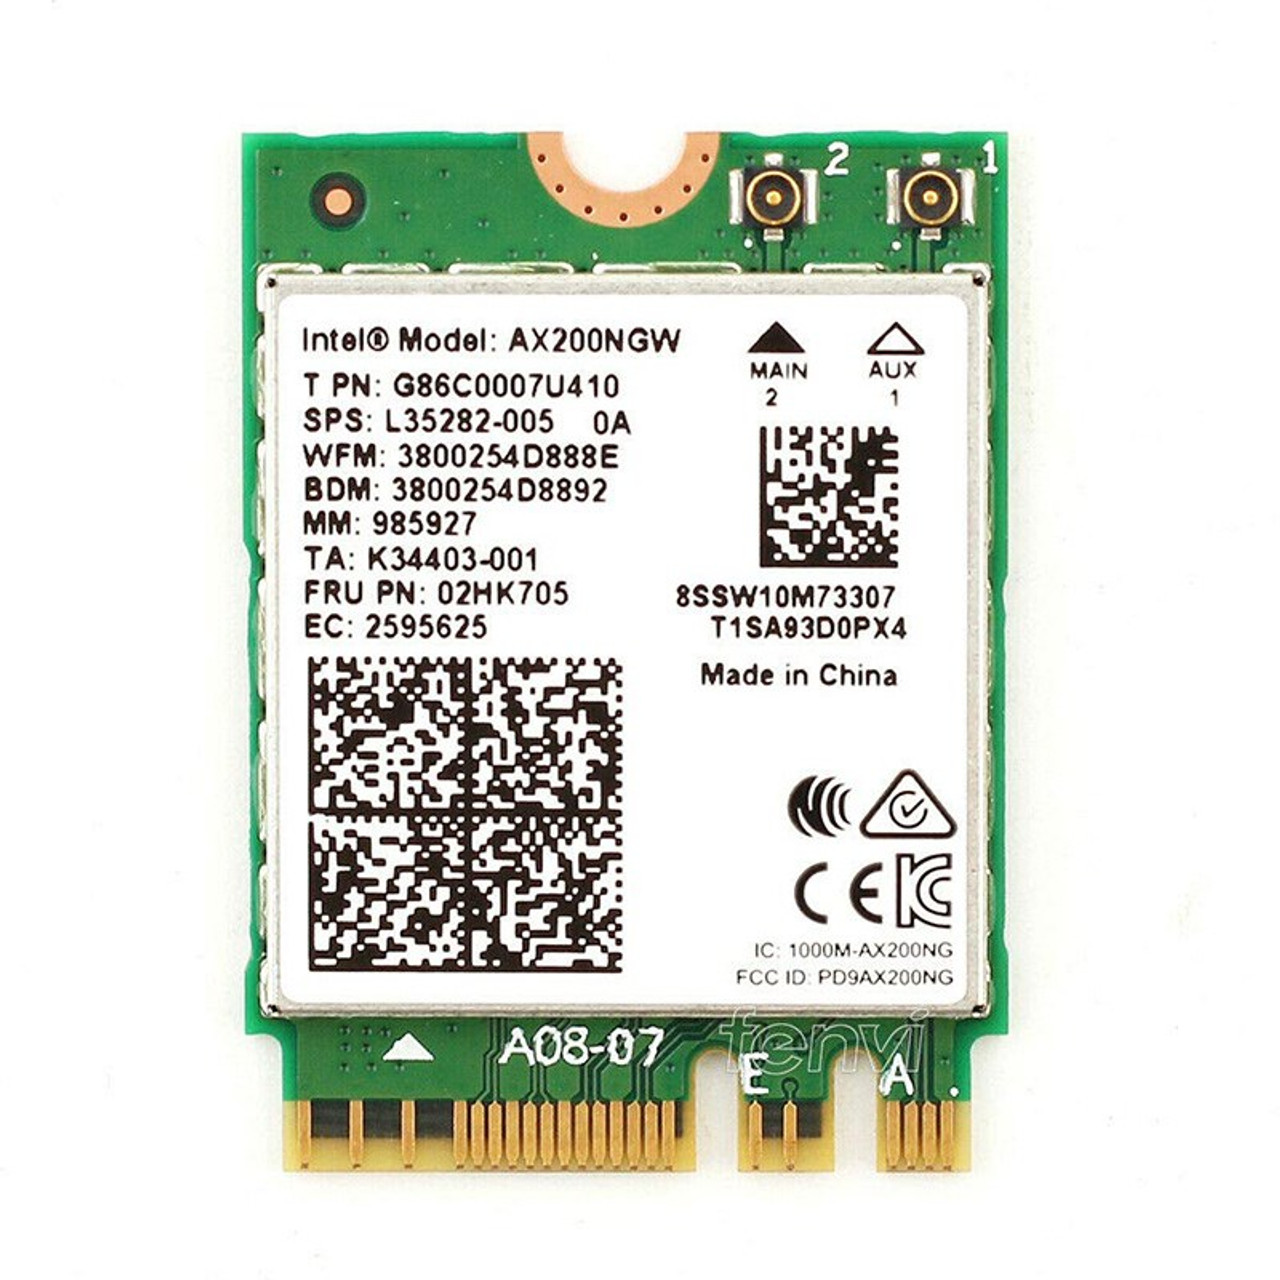 Image for Intel Wi-Fi 6 AX200 Dual-Band M.2 2230 Network Adapter with Bluetooth CX Computer Superstore